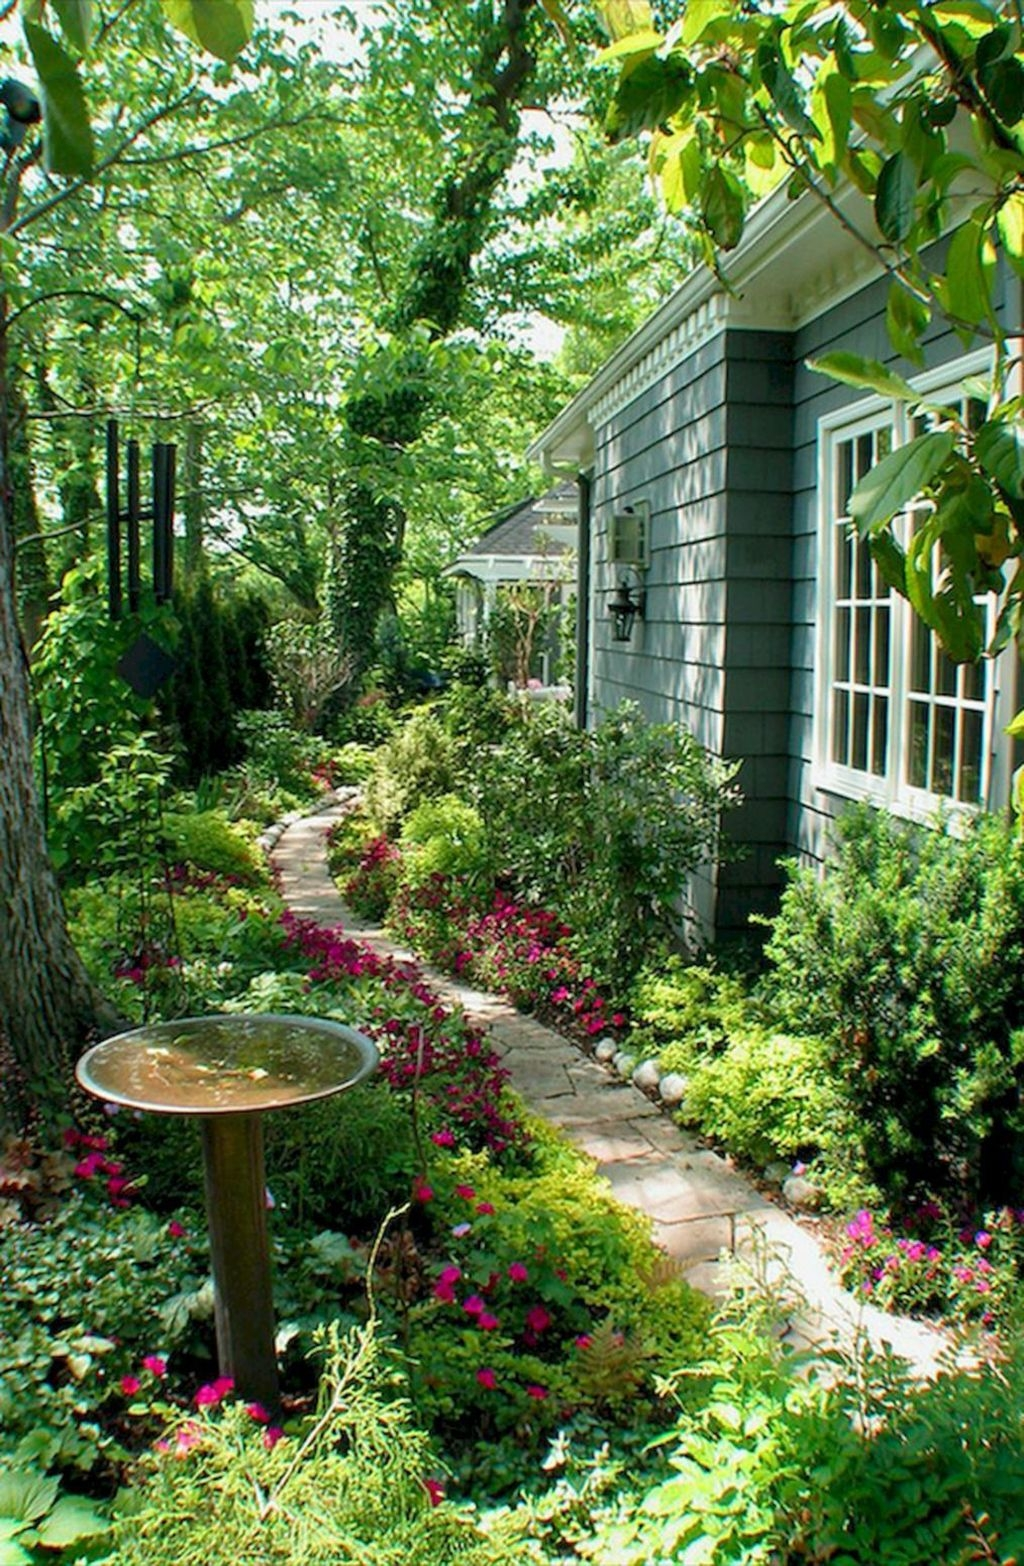 Awesome Cottage Garden Design Ideas For Your Dream House28